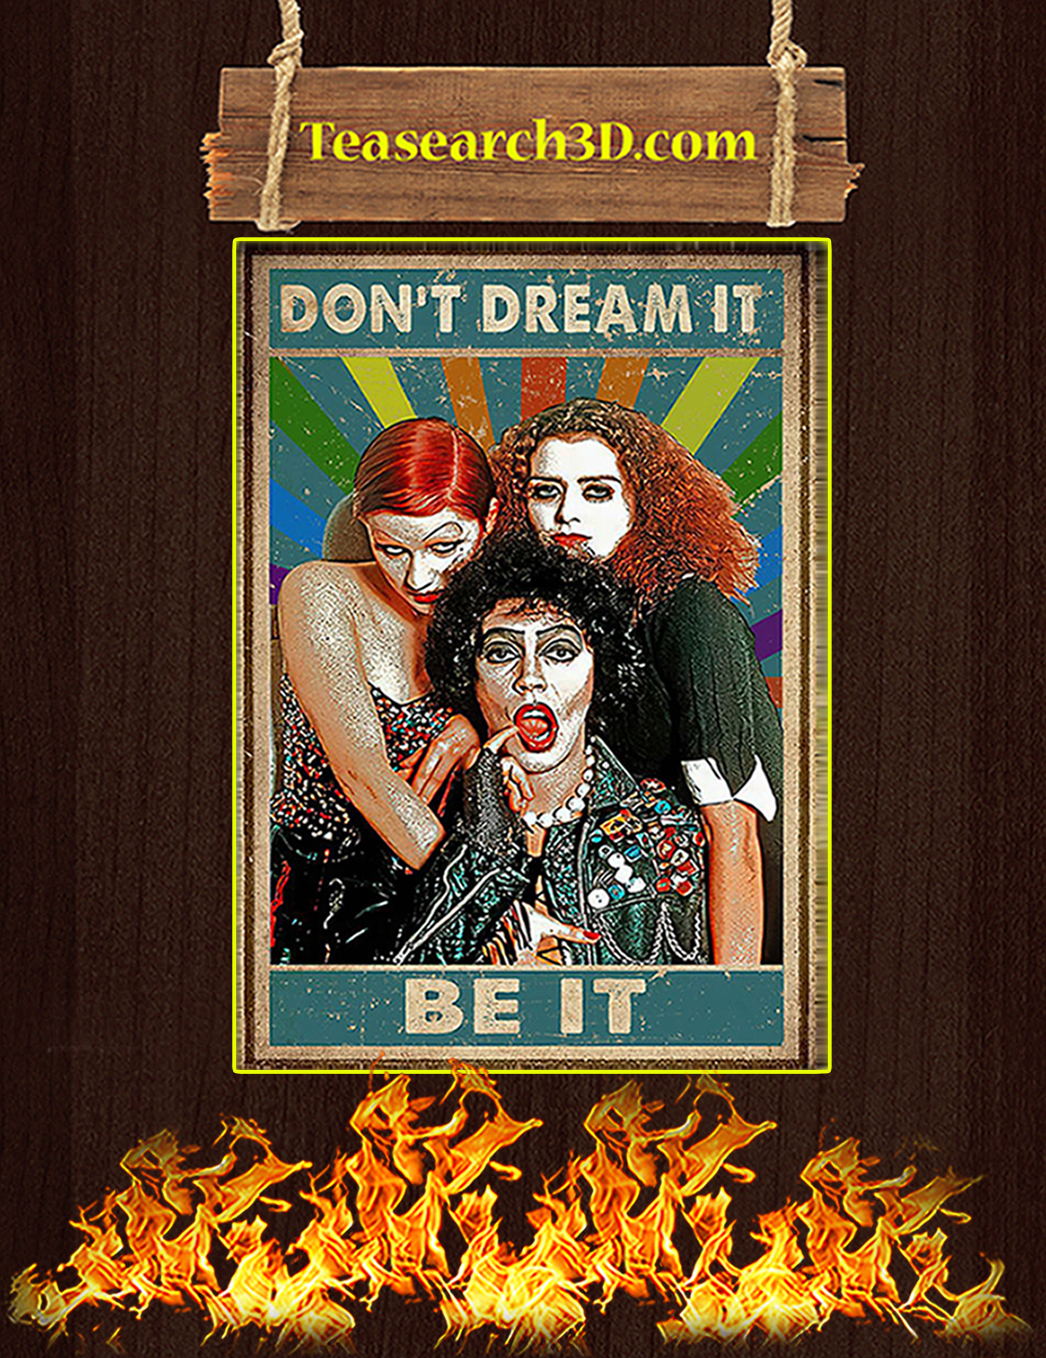 Don't dream it be it poster A1